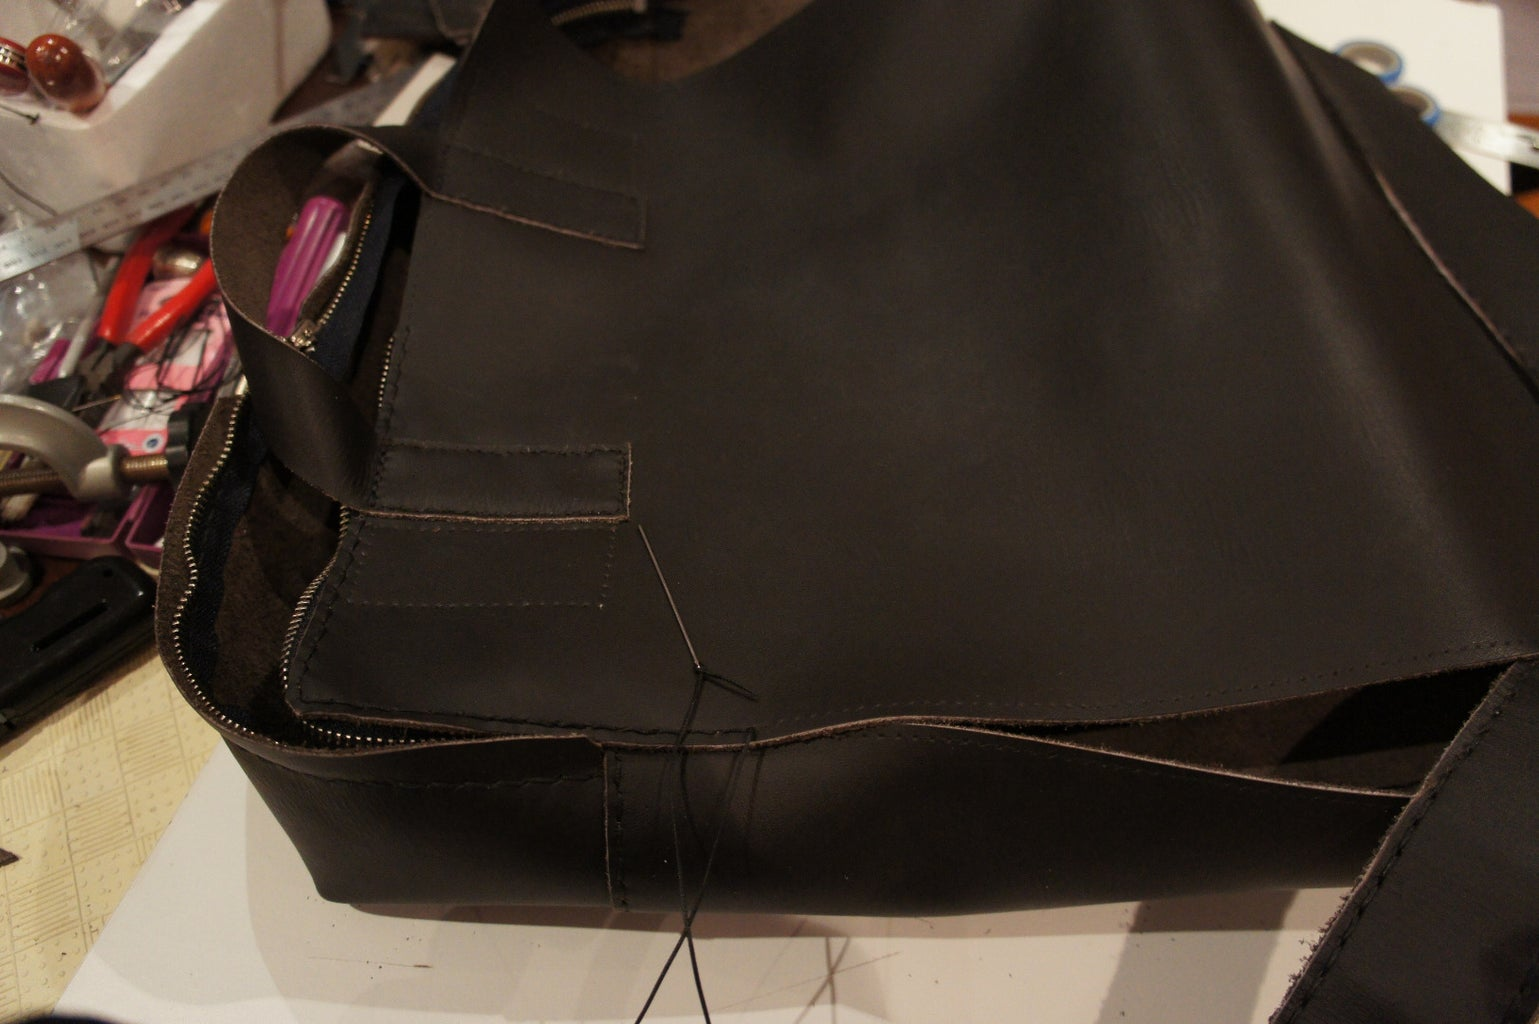 Assembling the Main Compartment: Zip